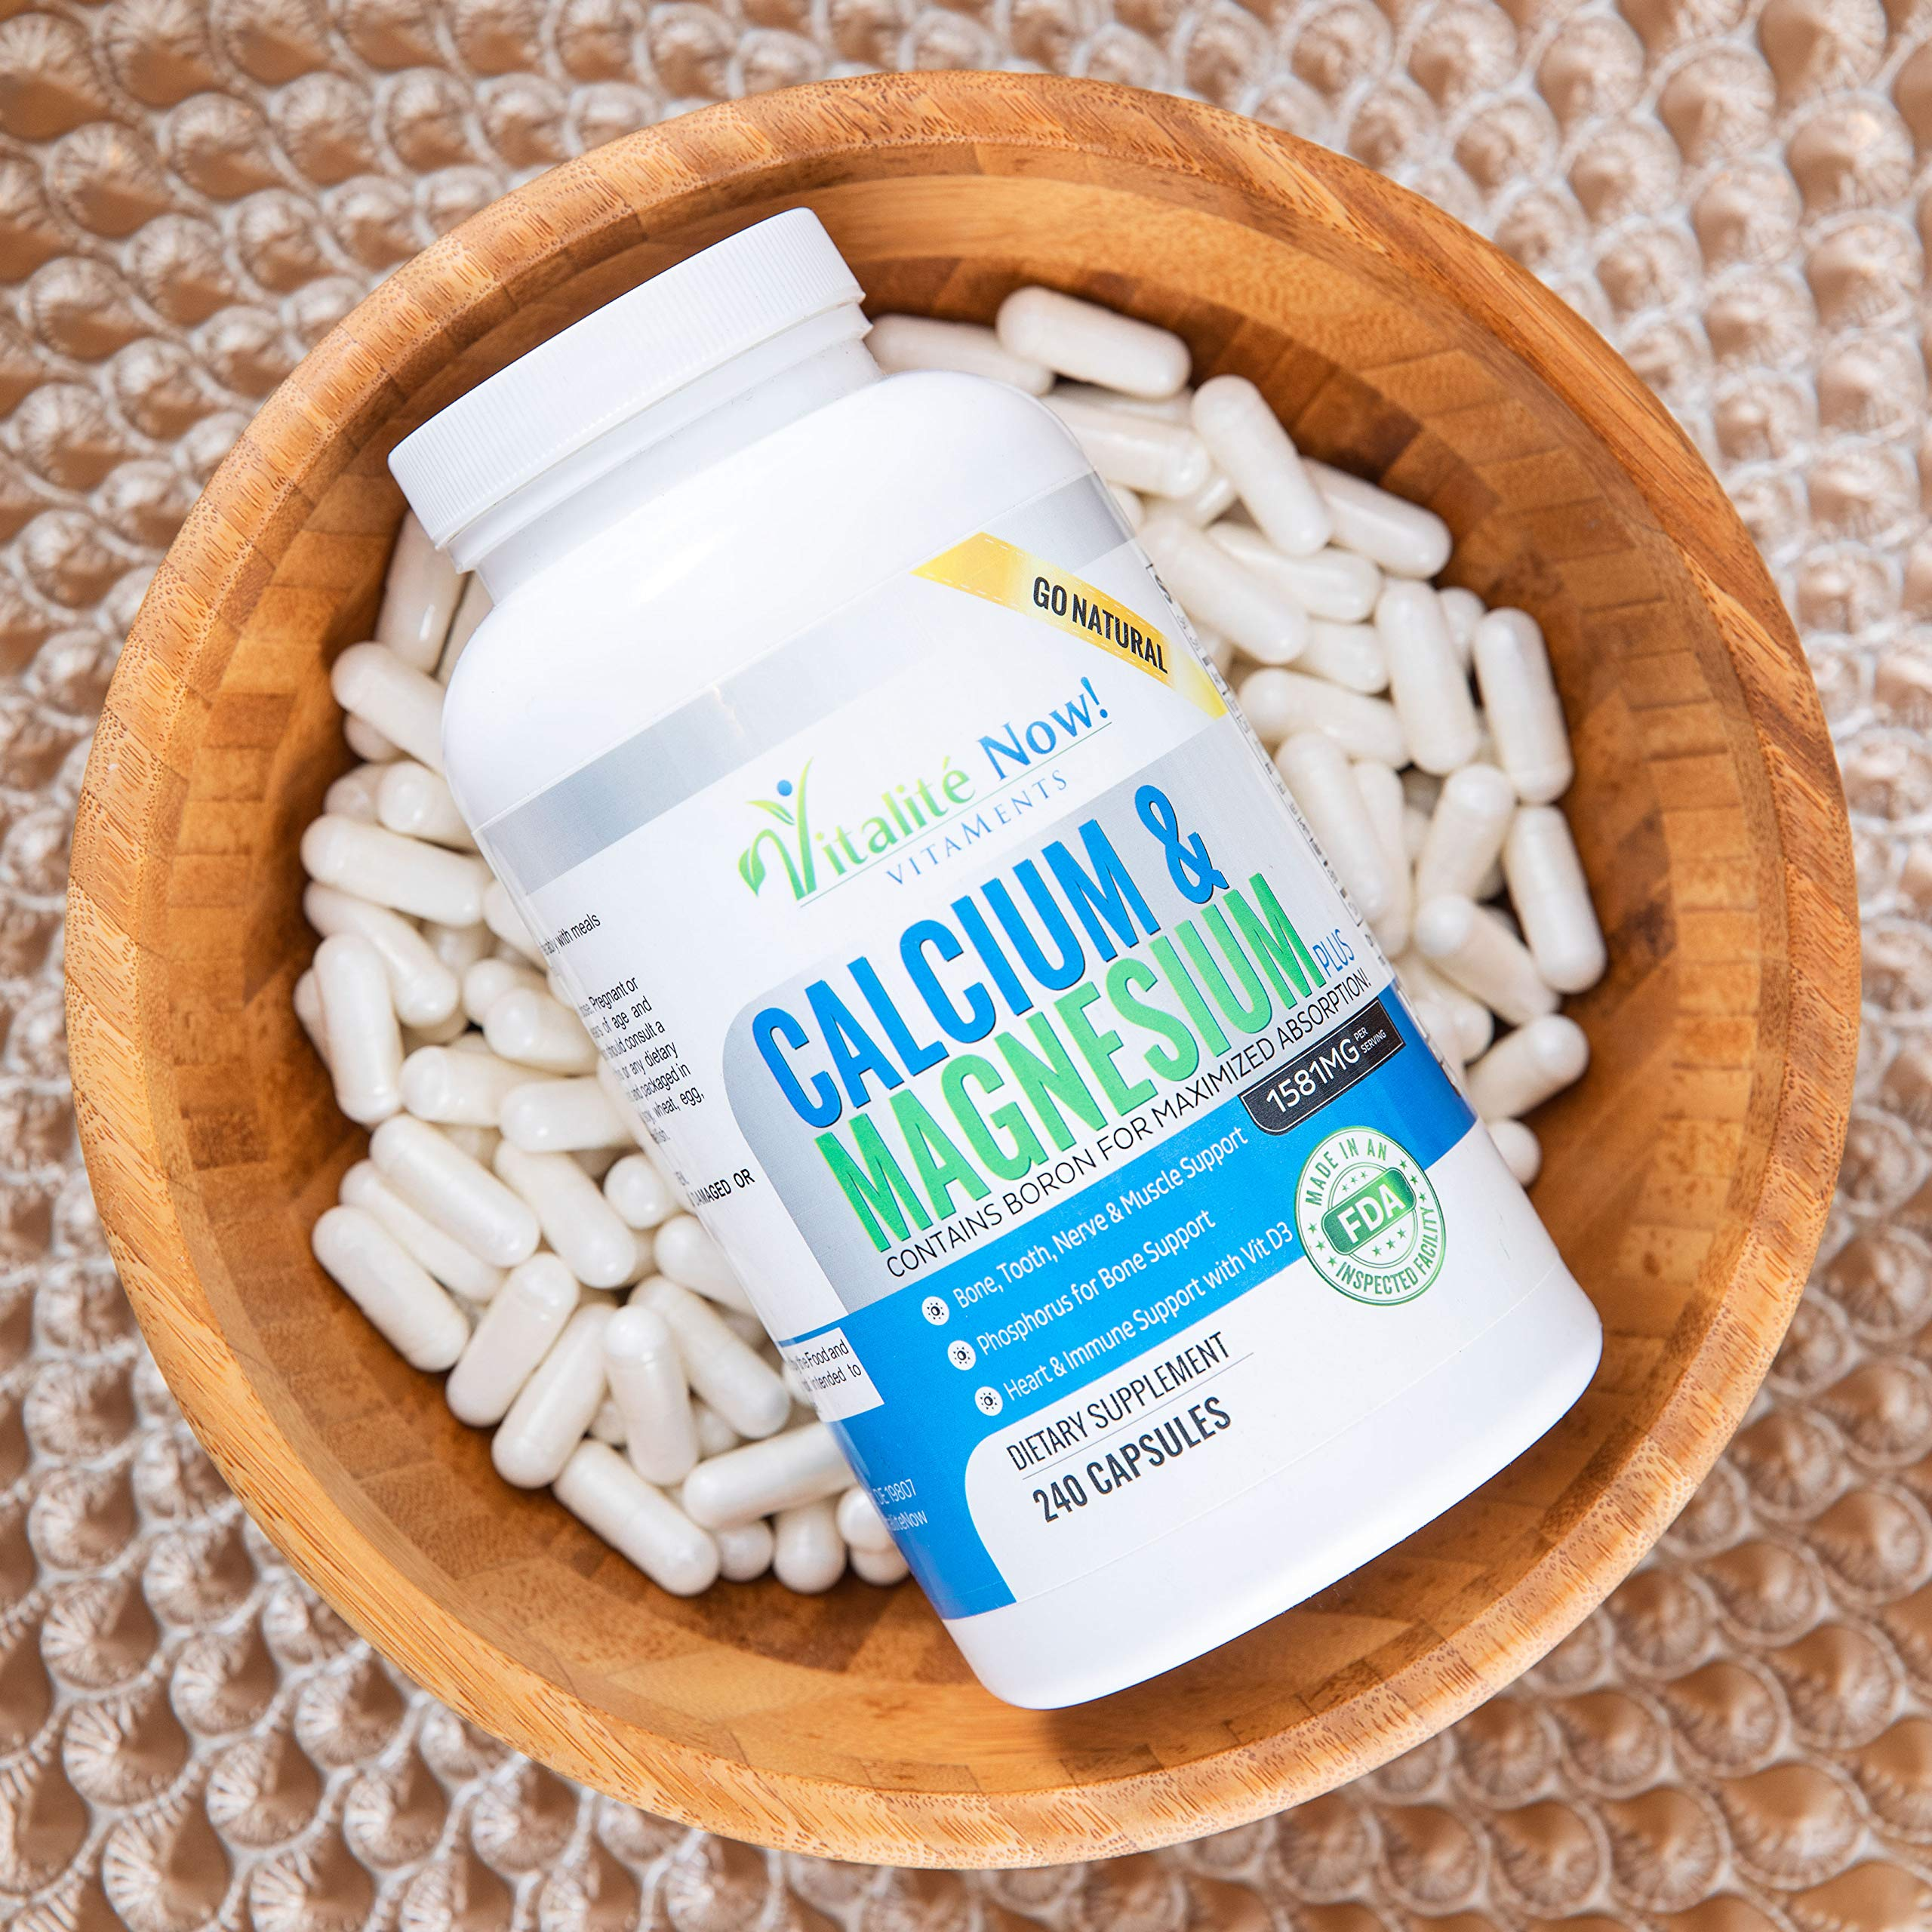 Best Calcium & Magnesium + Vitamin D3 400 IU - Highly Absorbable with Boron - 10 Forms of Calcium + Phosphorus for Bone Strength - All Natural - 240 Capsules - 2 Month Supply!